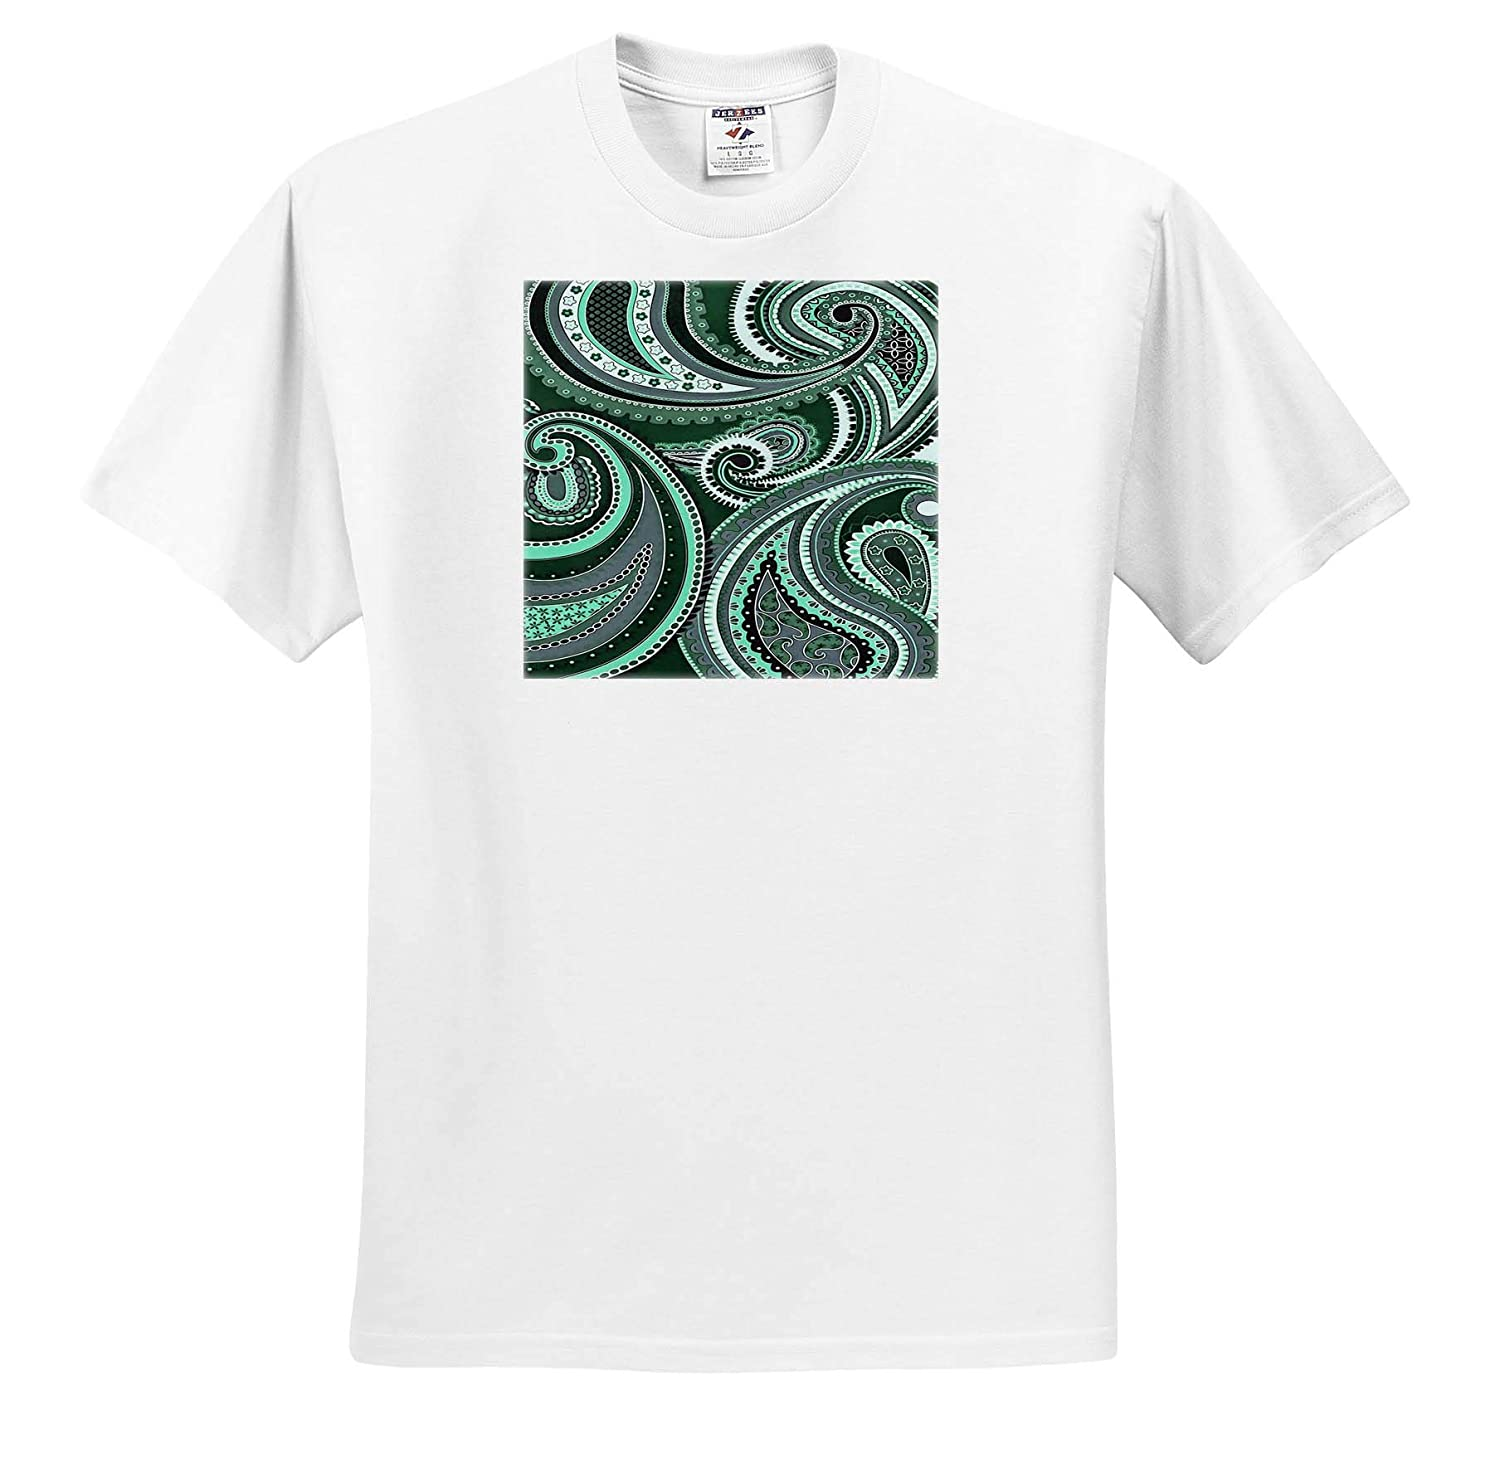 Adult T-Shirt XL Paisley Design Playing with Paisley Patterns Aquamarine Tones Digital Art 3dRose Taiche ts/_317493